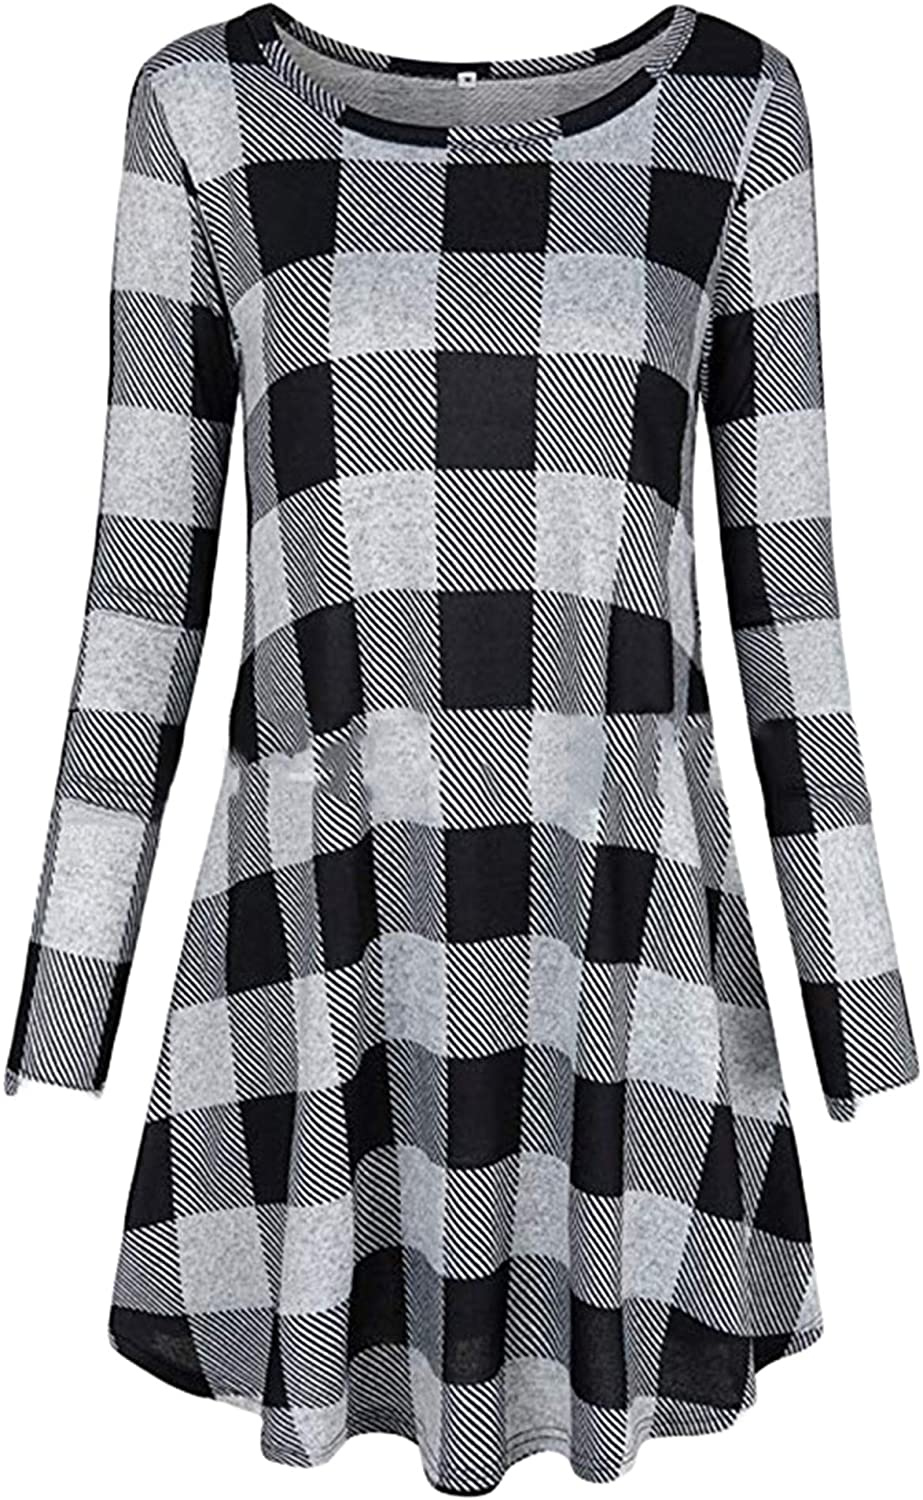 Soluo Women's Casual Loose Long Sleeve Plaid T Shirt Round-Neck Swing Tunic Dress with Pockets